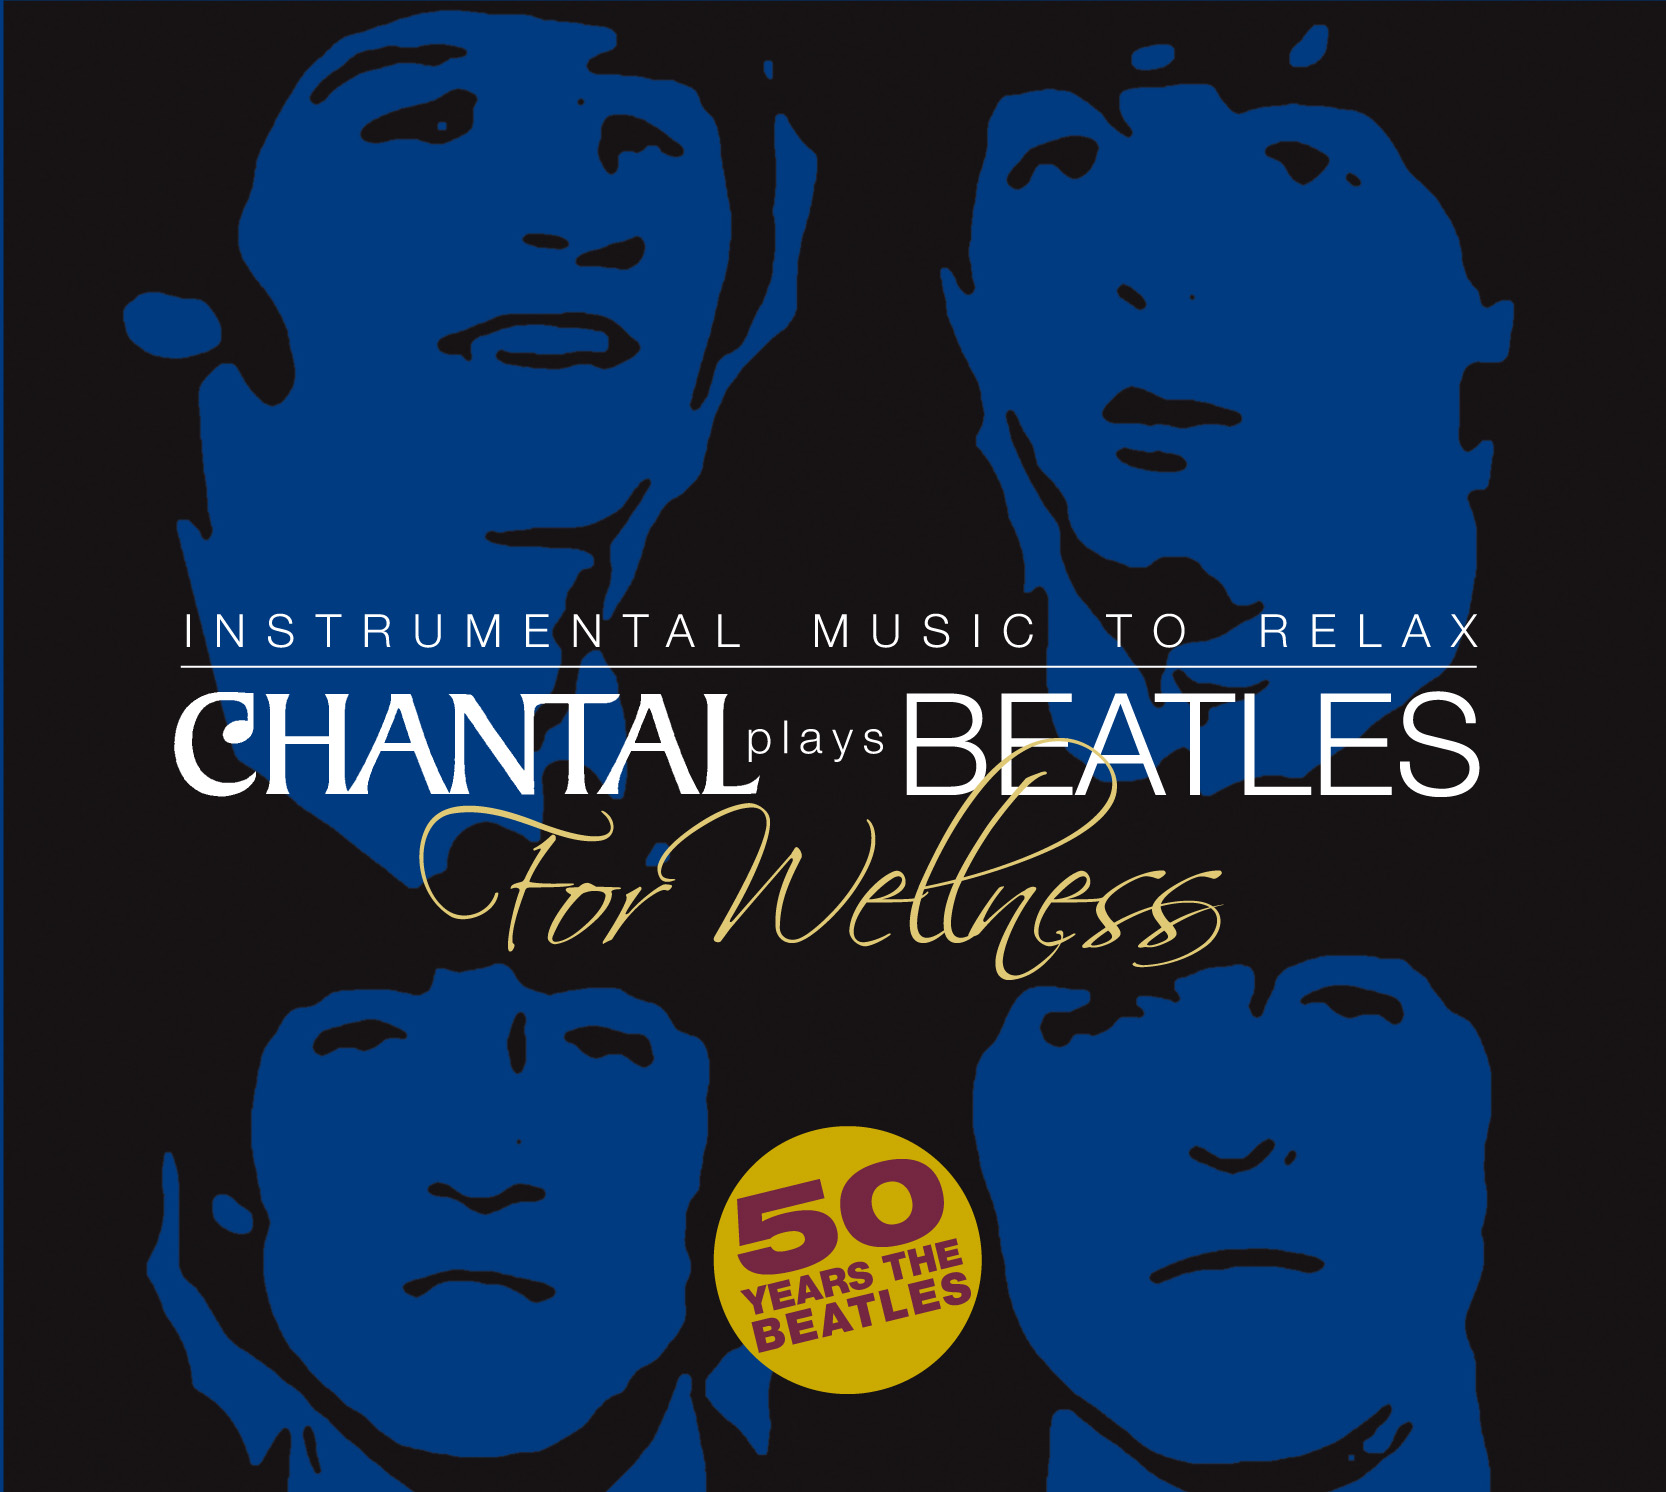 Neue CD: Chantal plays Beatles – Instrumental Music To Relax